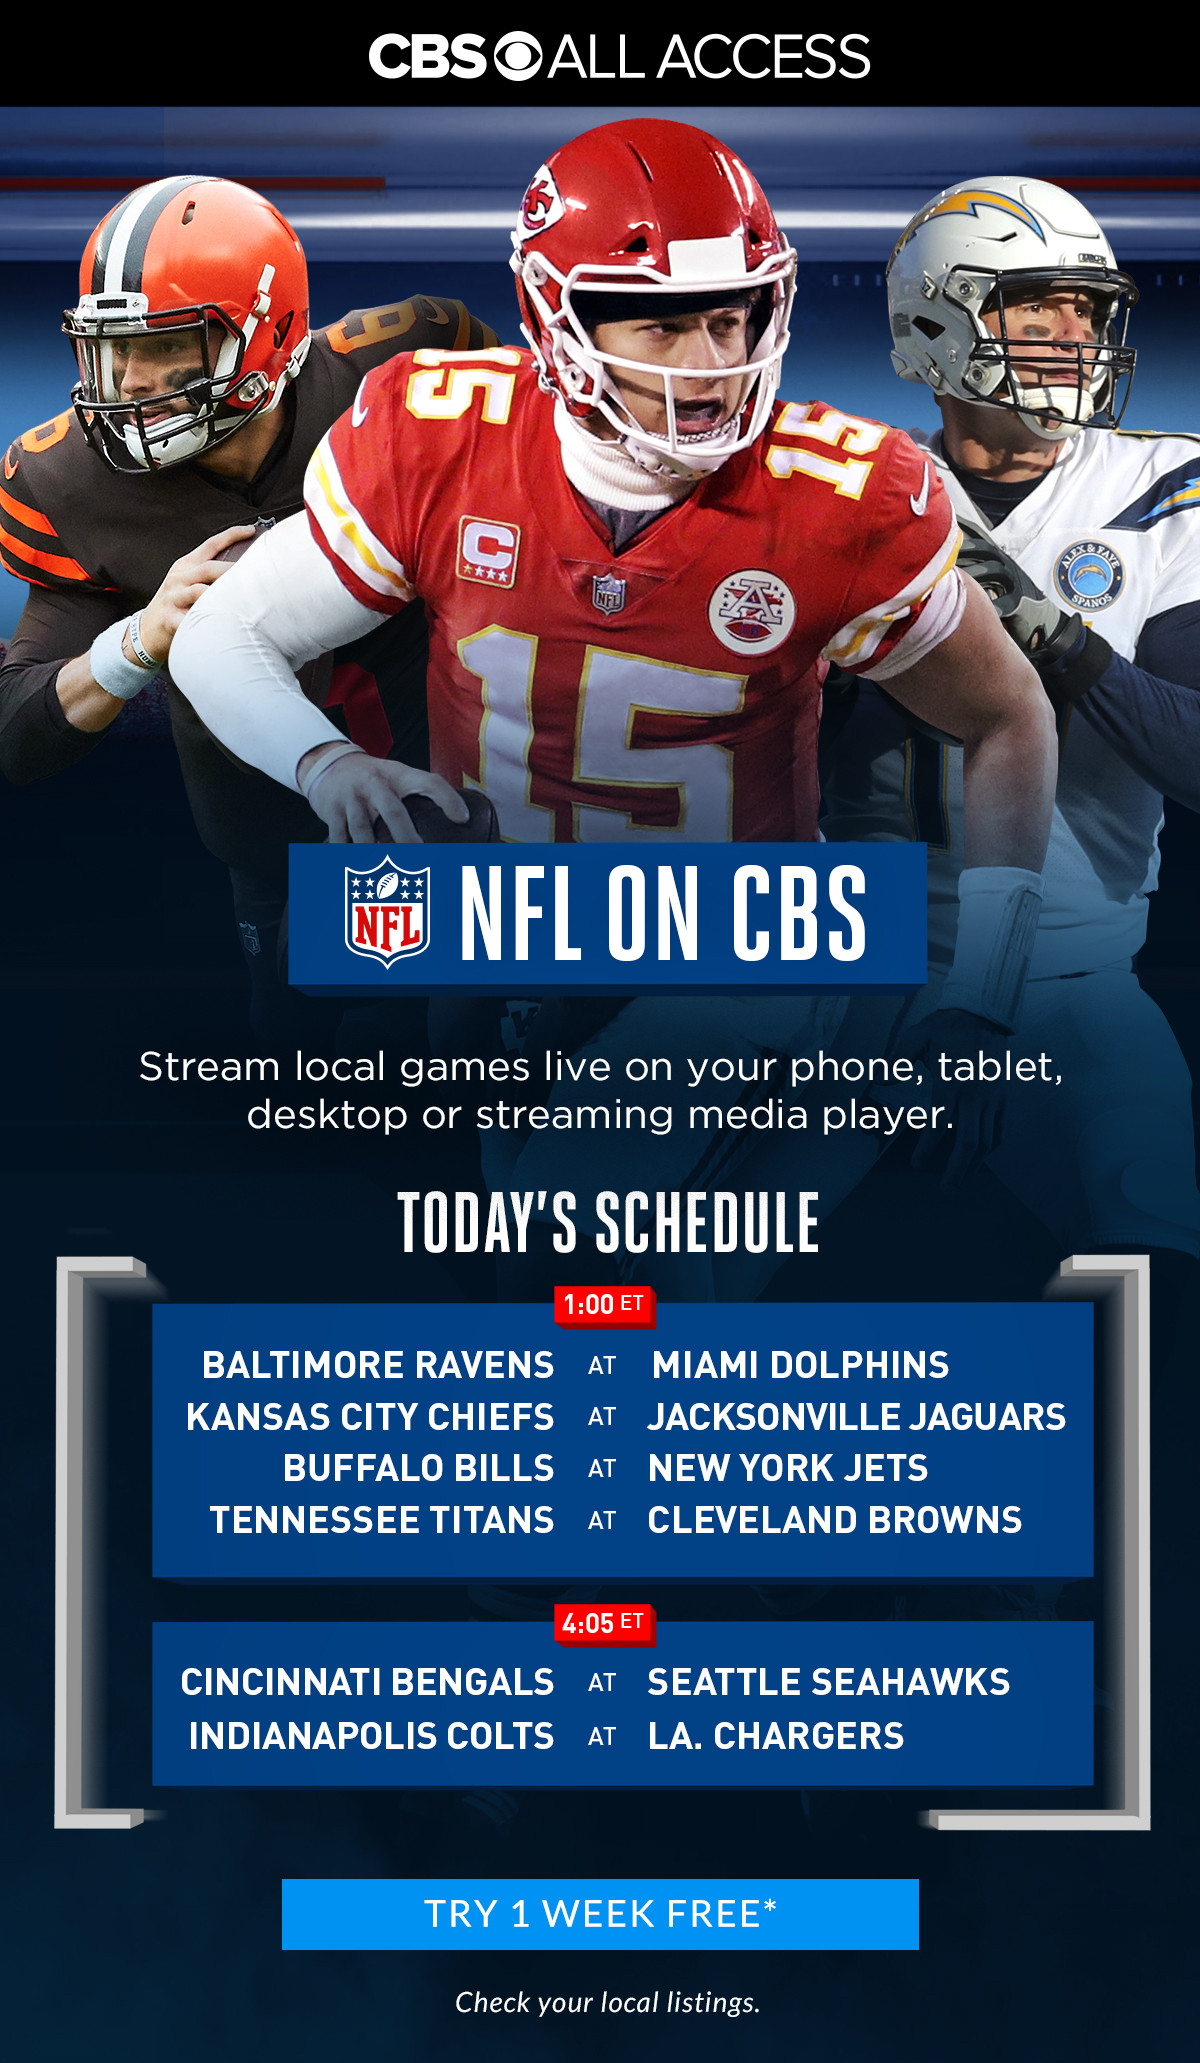 Cbs Sports Stream Nfl On Cbs At Home Or On The Go With Cbs All Access Milled